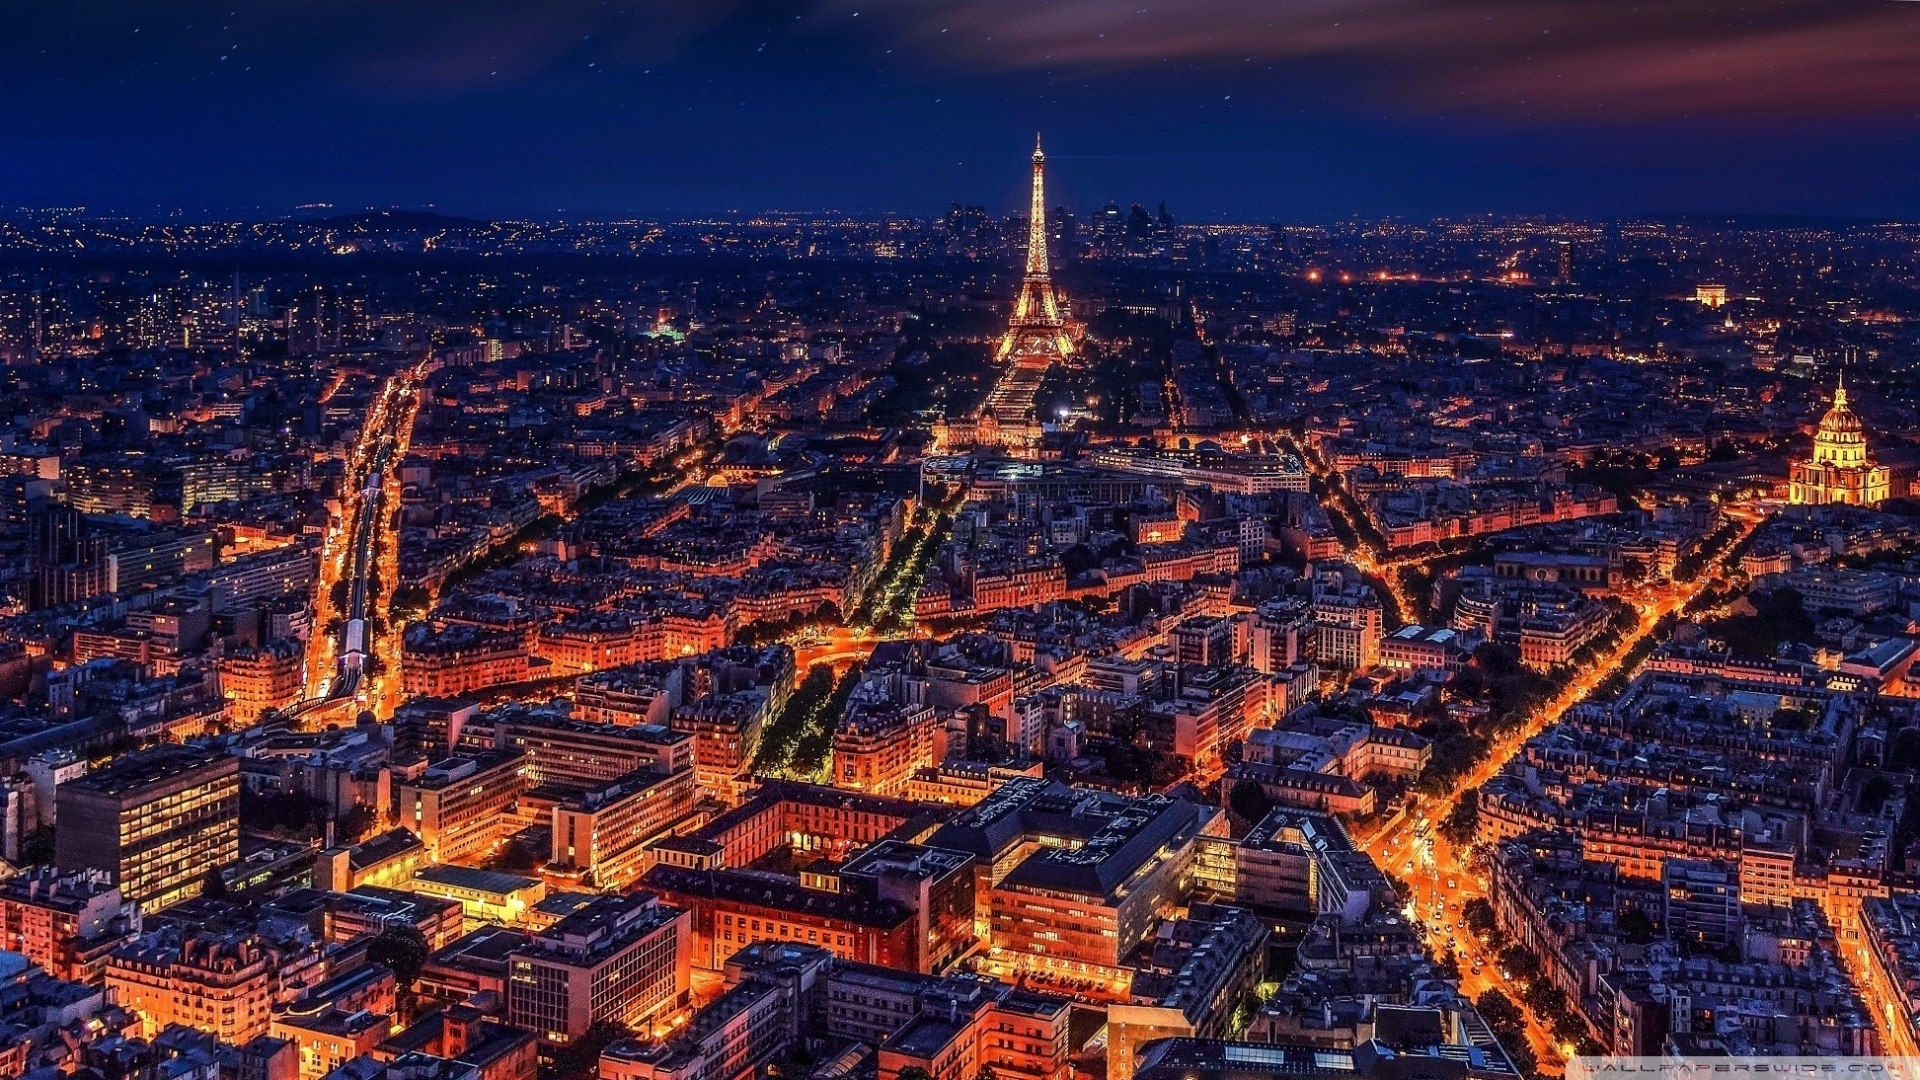 paris at night ❤ 4k hd desktop wallpaper for 4k ultra hd tv • wide